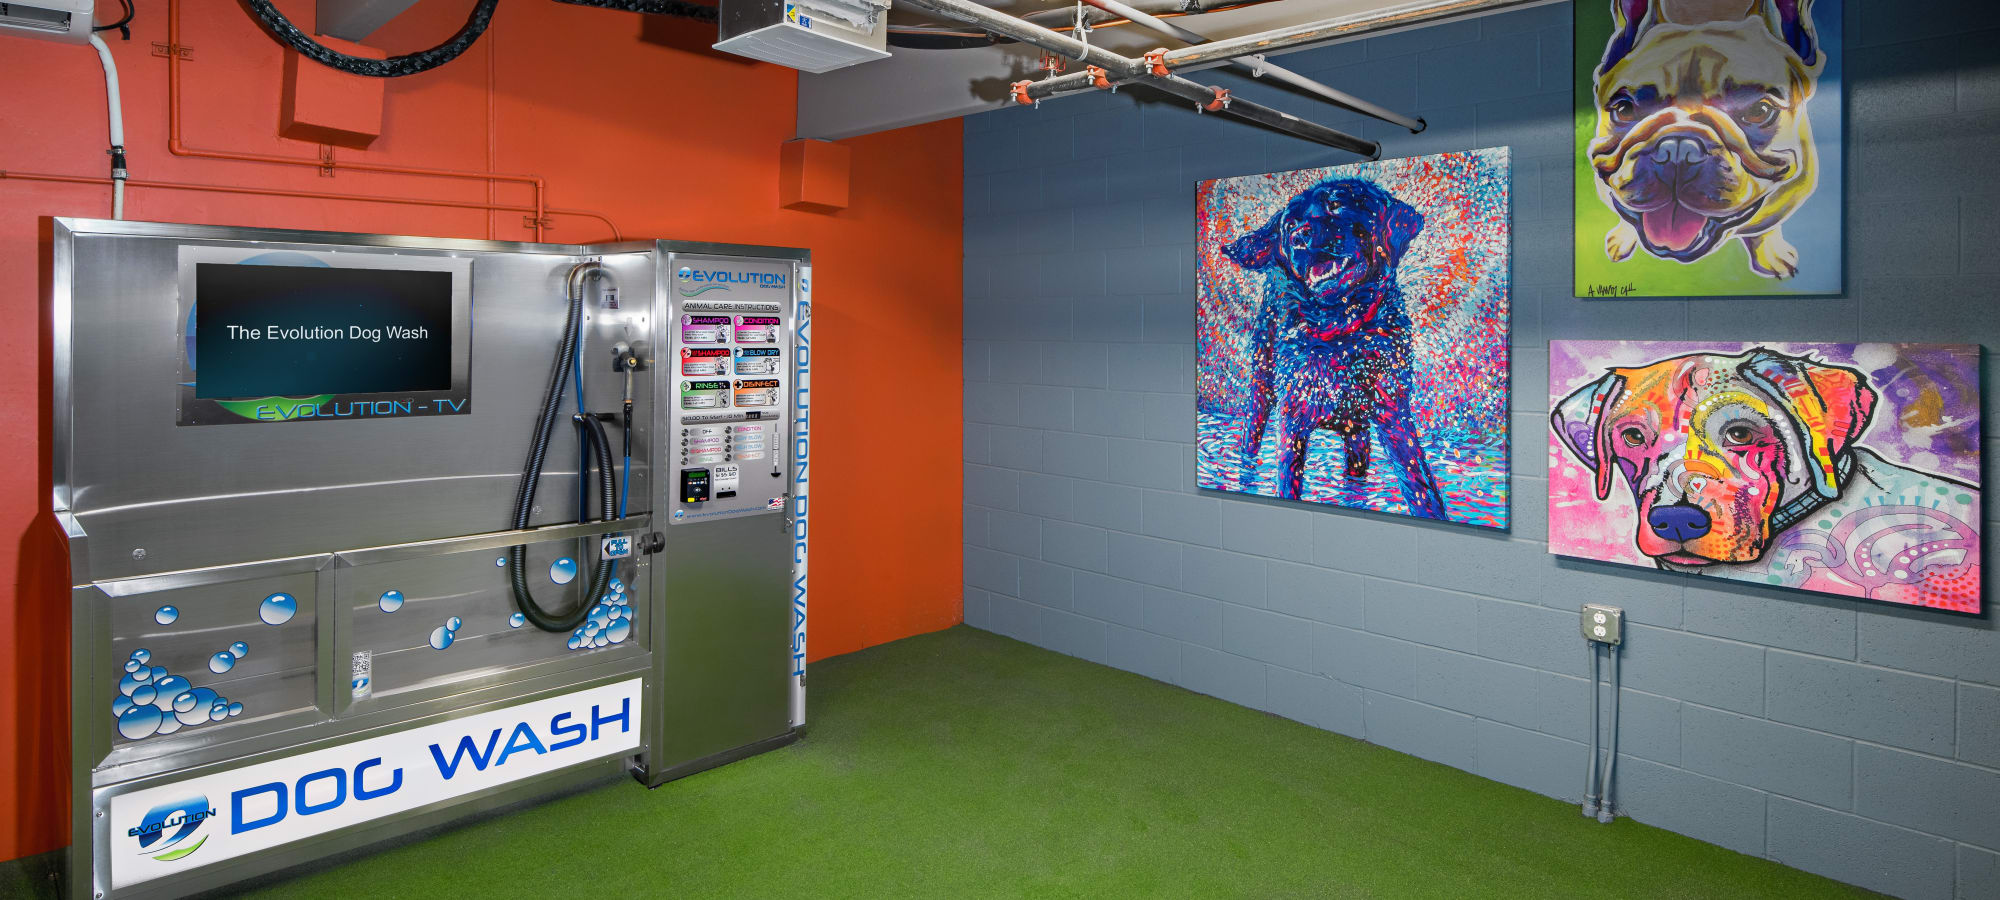 Dog wash station at The Core Scottsdale in Scottsdale, Arizona